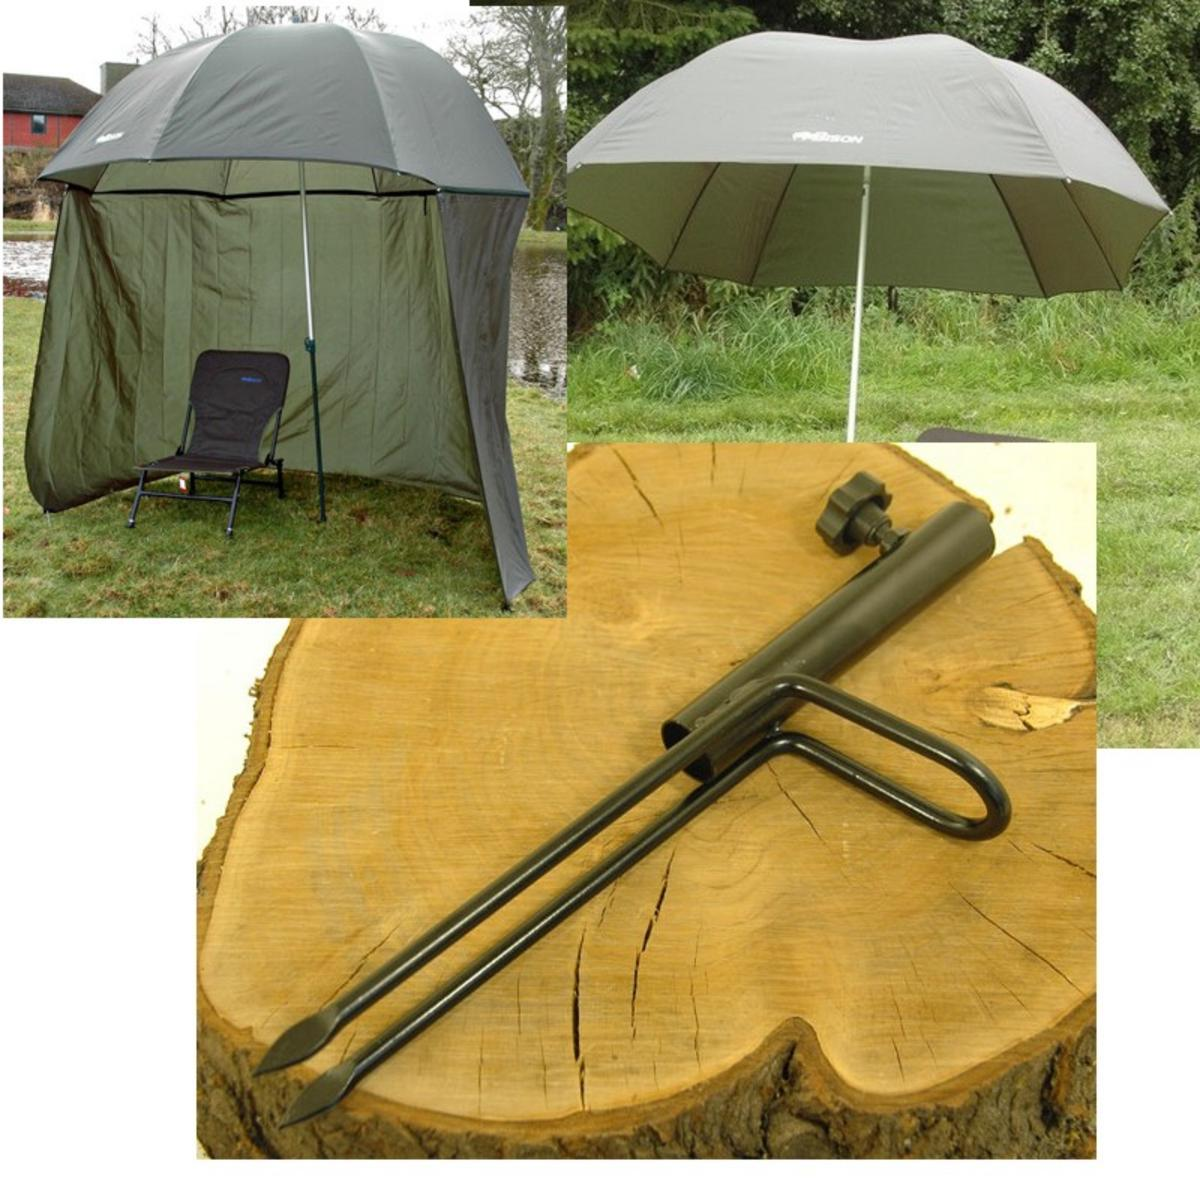 BISON TOP TILT UMBRELLA BROLLY SHELTER COMPLETE WITH FREE BROLLY SPIKE